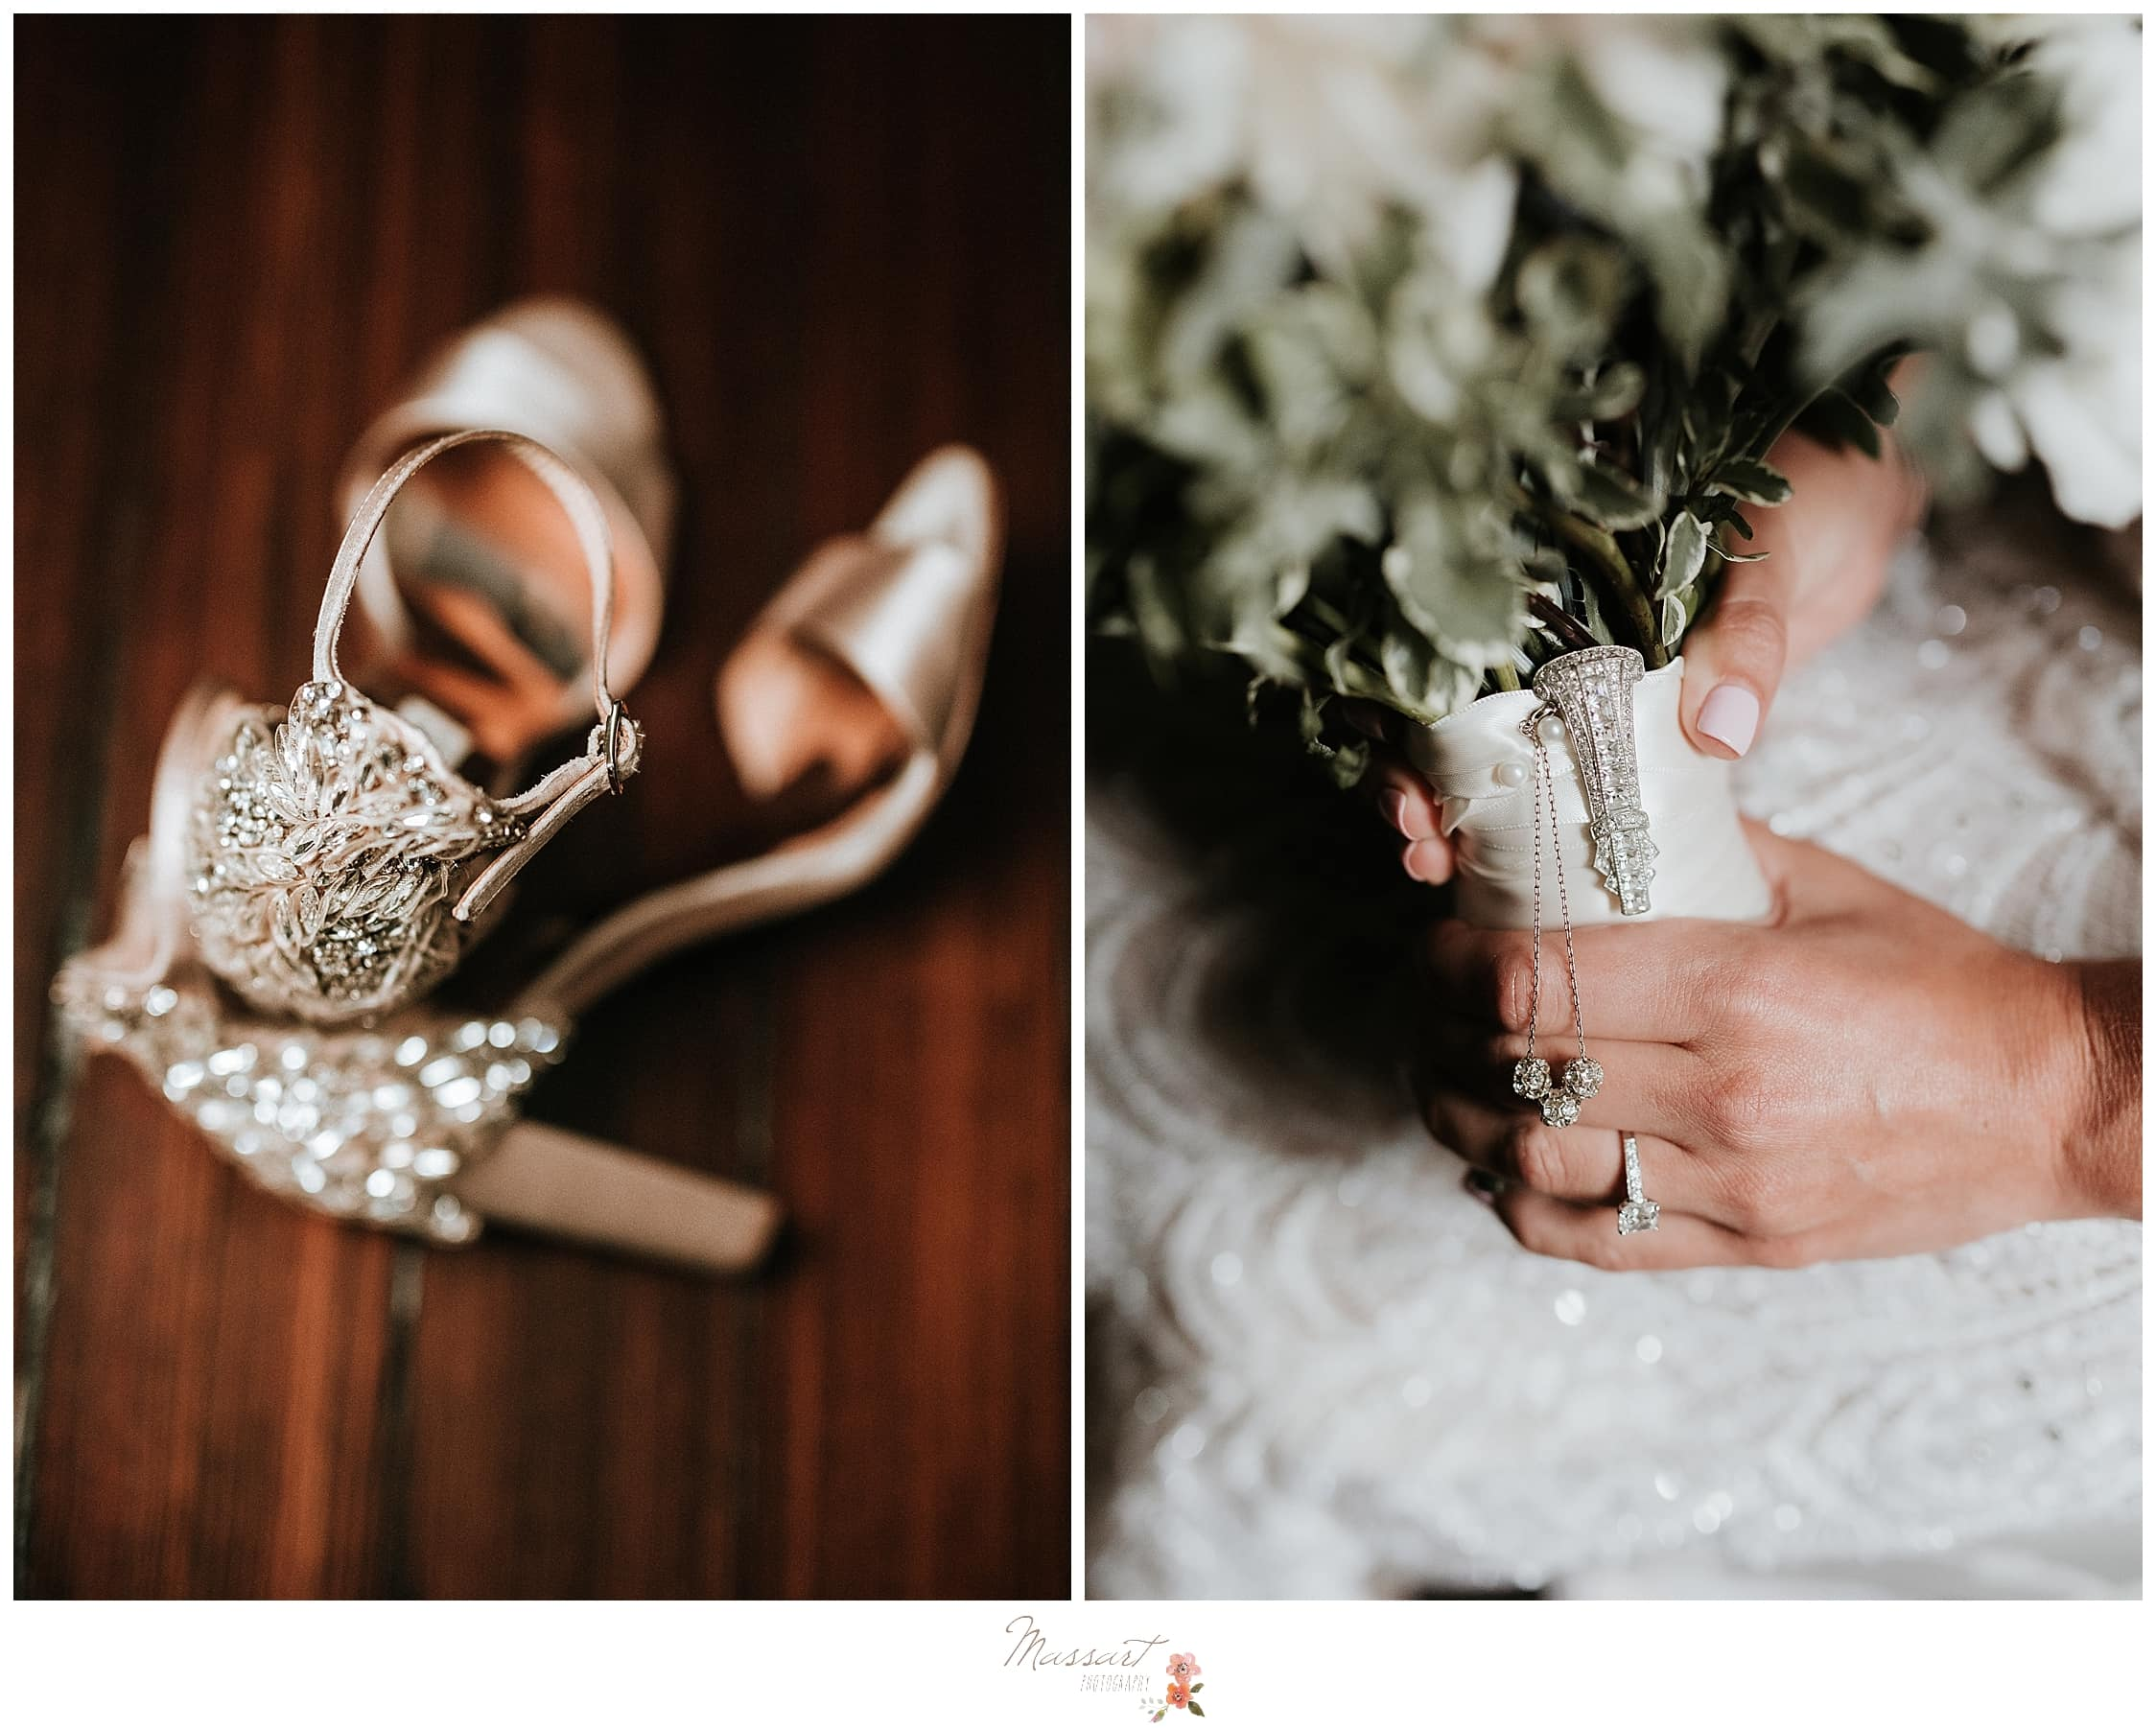 The bride's shoes and bouquet are important details captured by RI wedding photographers